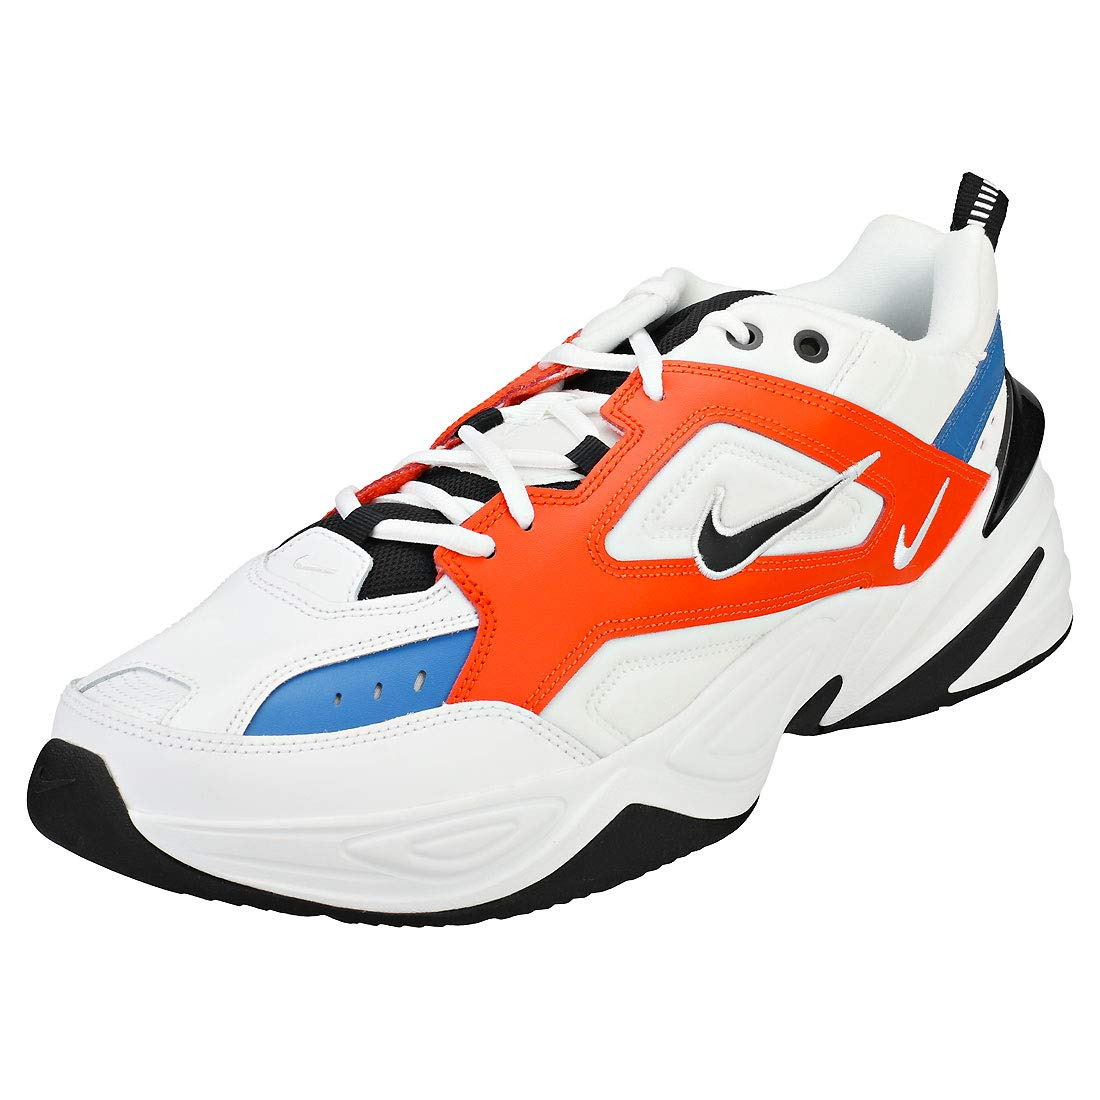 NIKE M2k Tekno, Chaussures de Homme Running Compétition Homme de 42 EU|Multicolore (Summit White/Black/Team Orange 100) e9a207